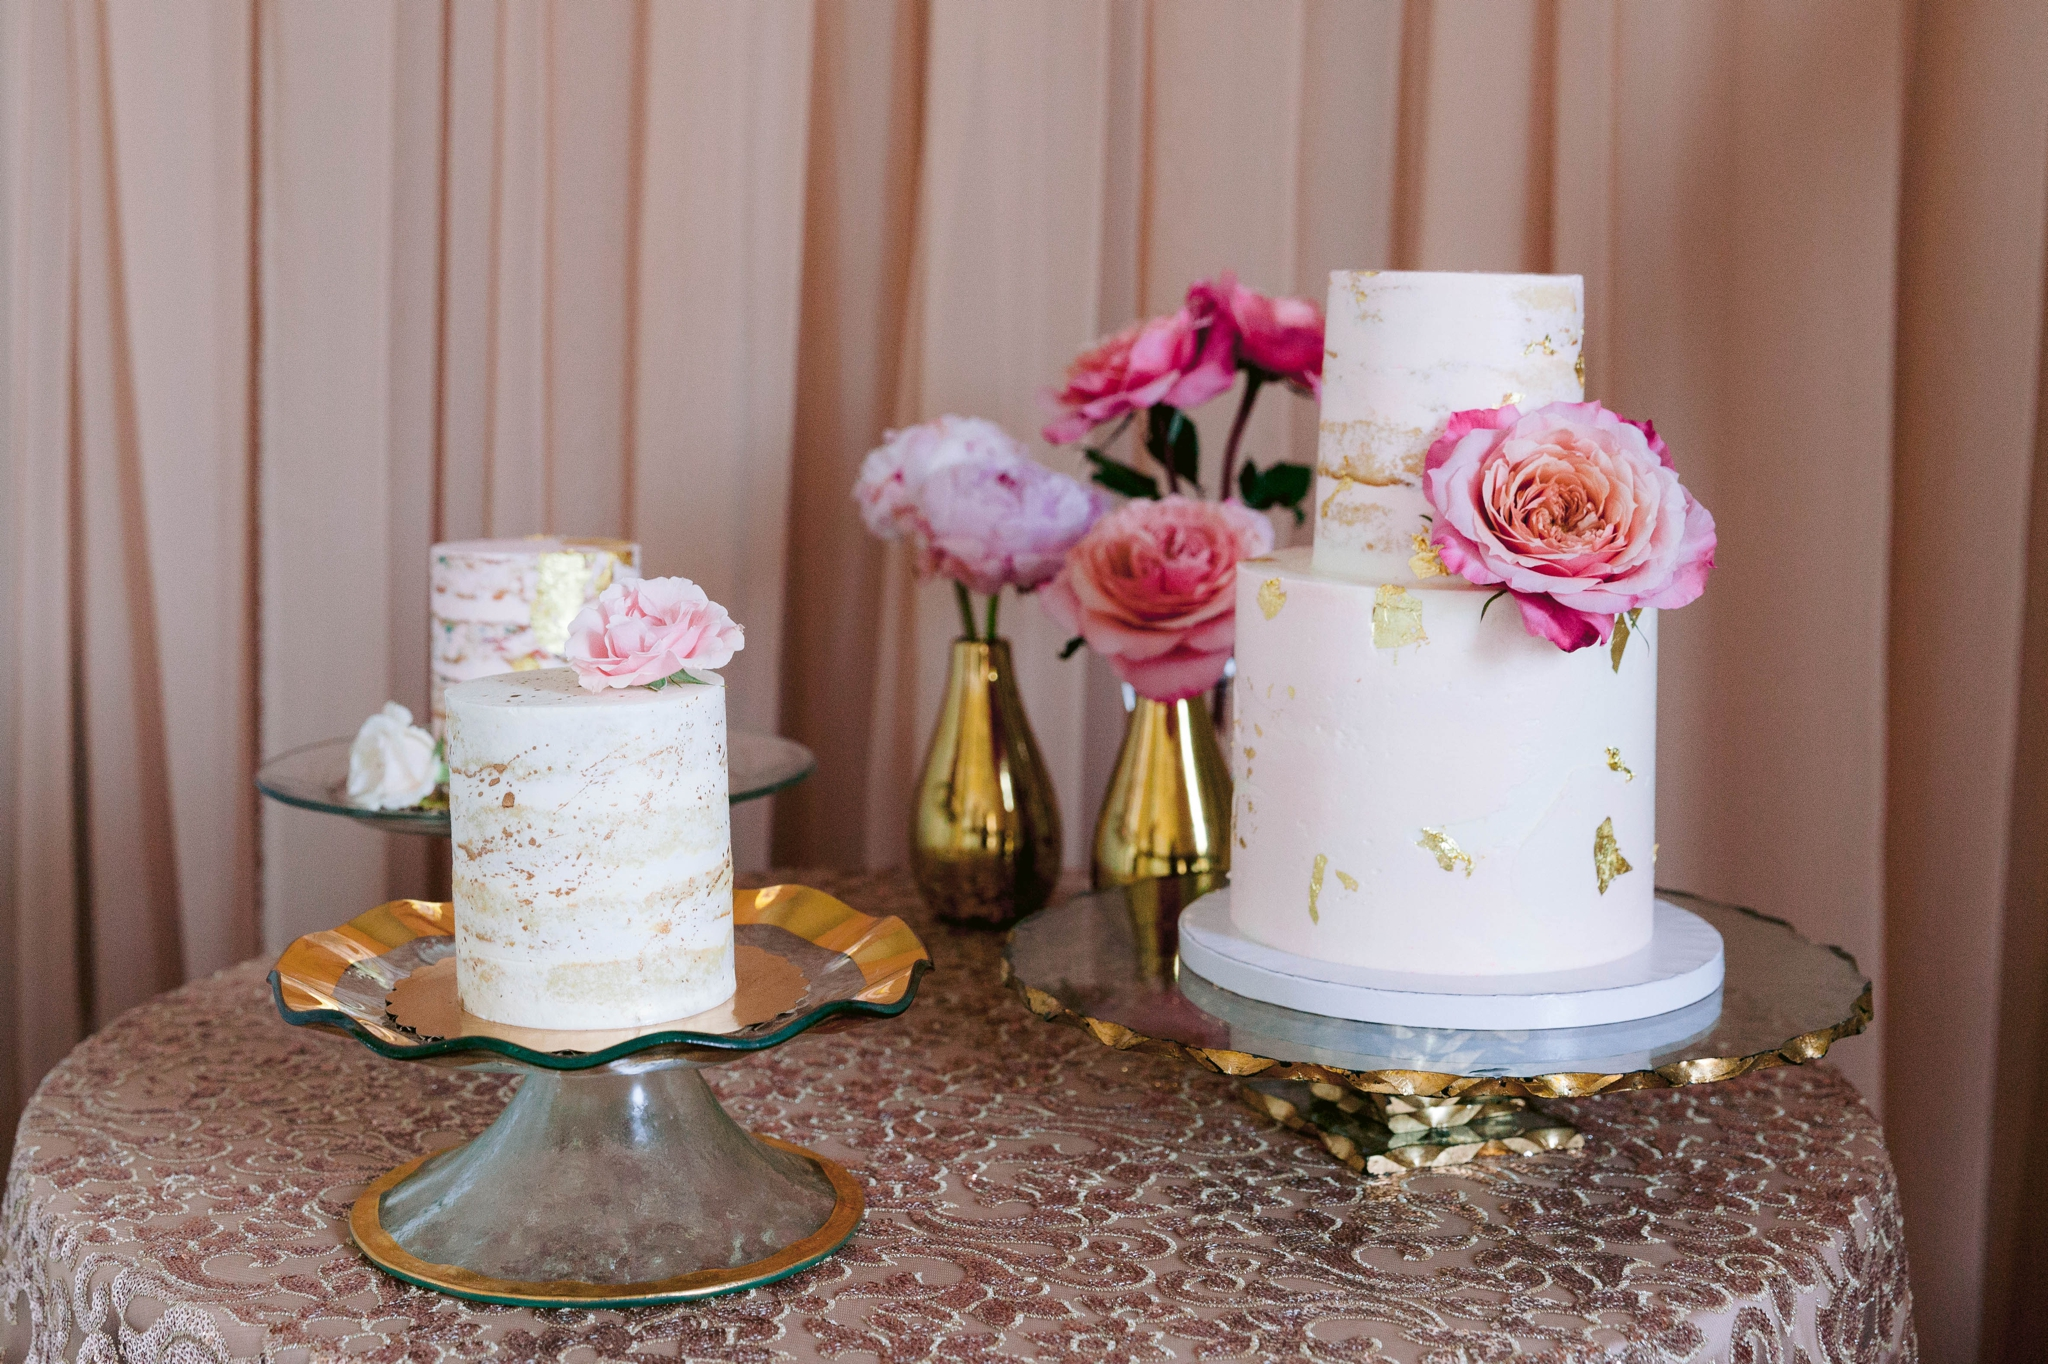 Wedding Cake and Desert Table Inspiration -  Decorated with gold details and pink flowers - Blush and Gold Wedding Inspiration - Honolulu, Oahu, Hawaii Wedding Photographer - Johanna Dye Photography - Martha Stewart Weddings - Style Me Pretty